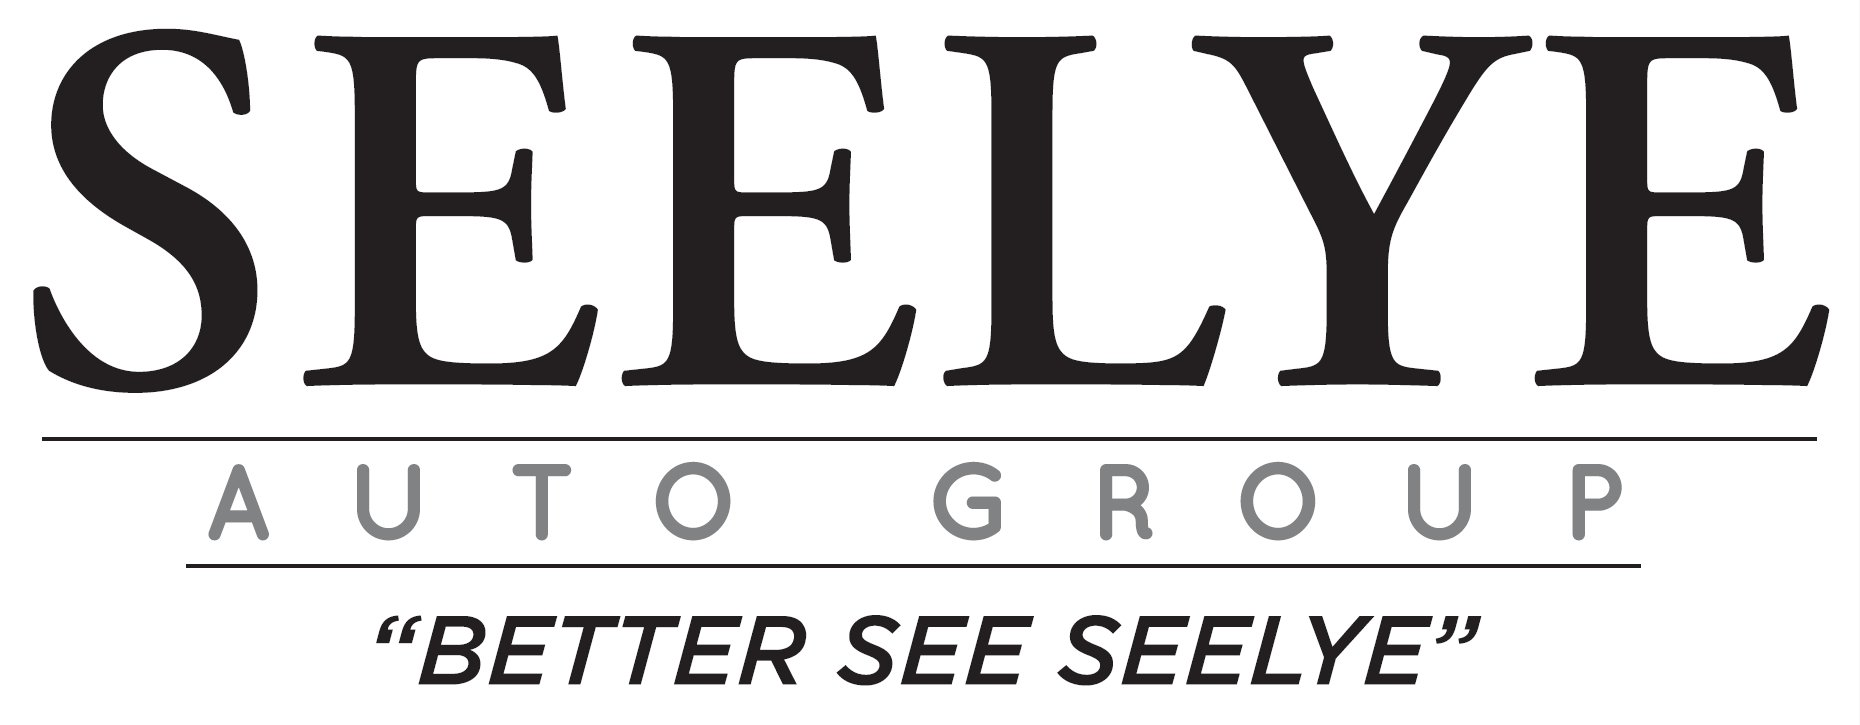 Seelye Auto Group Logo